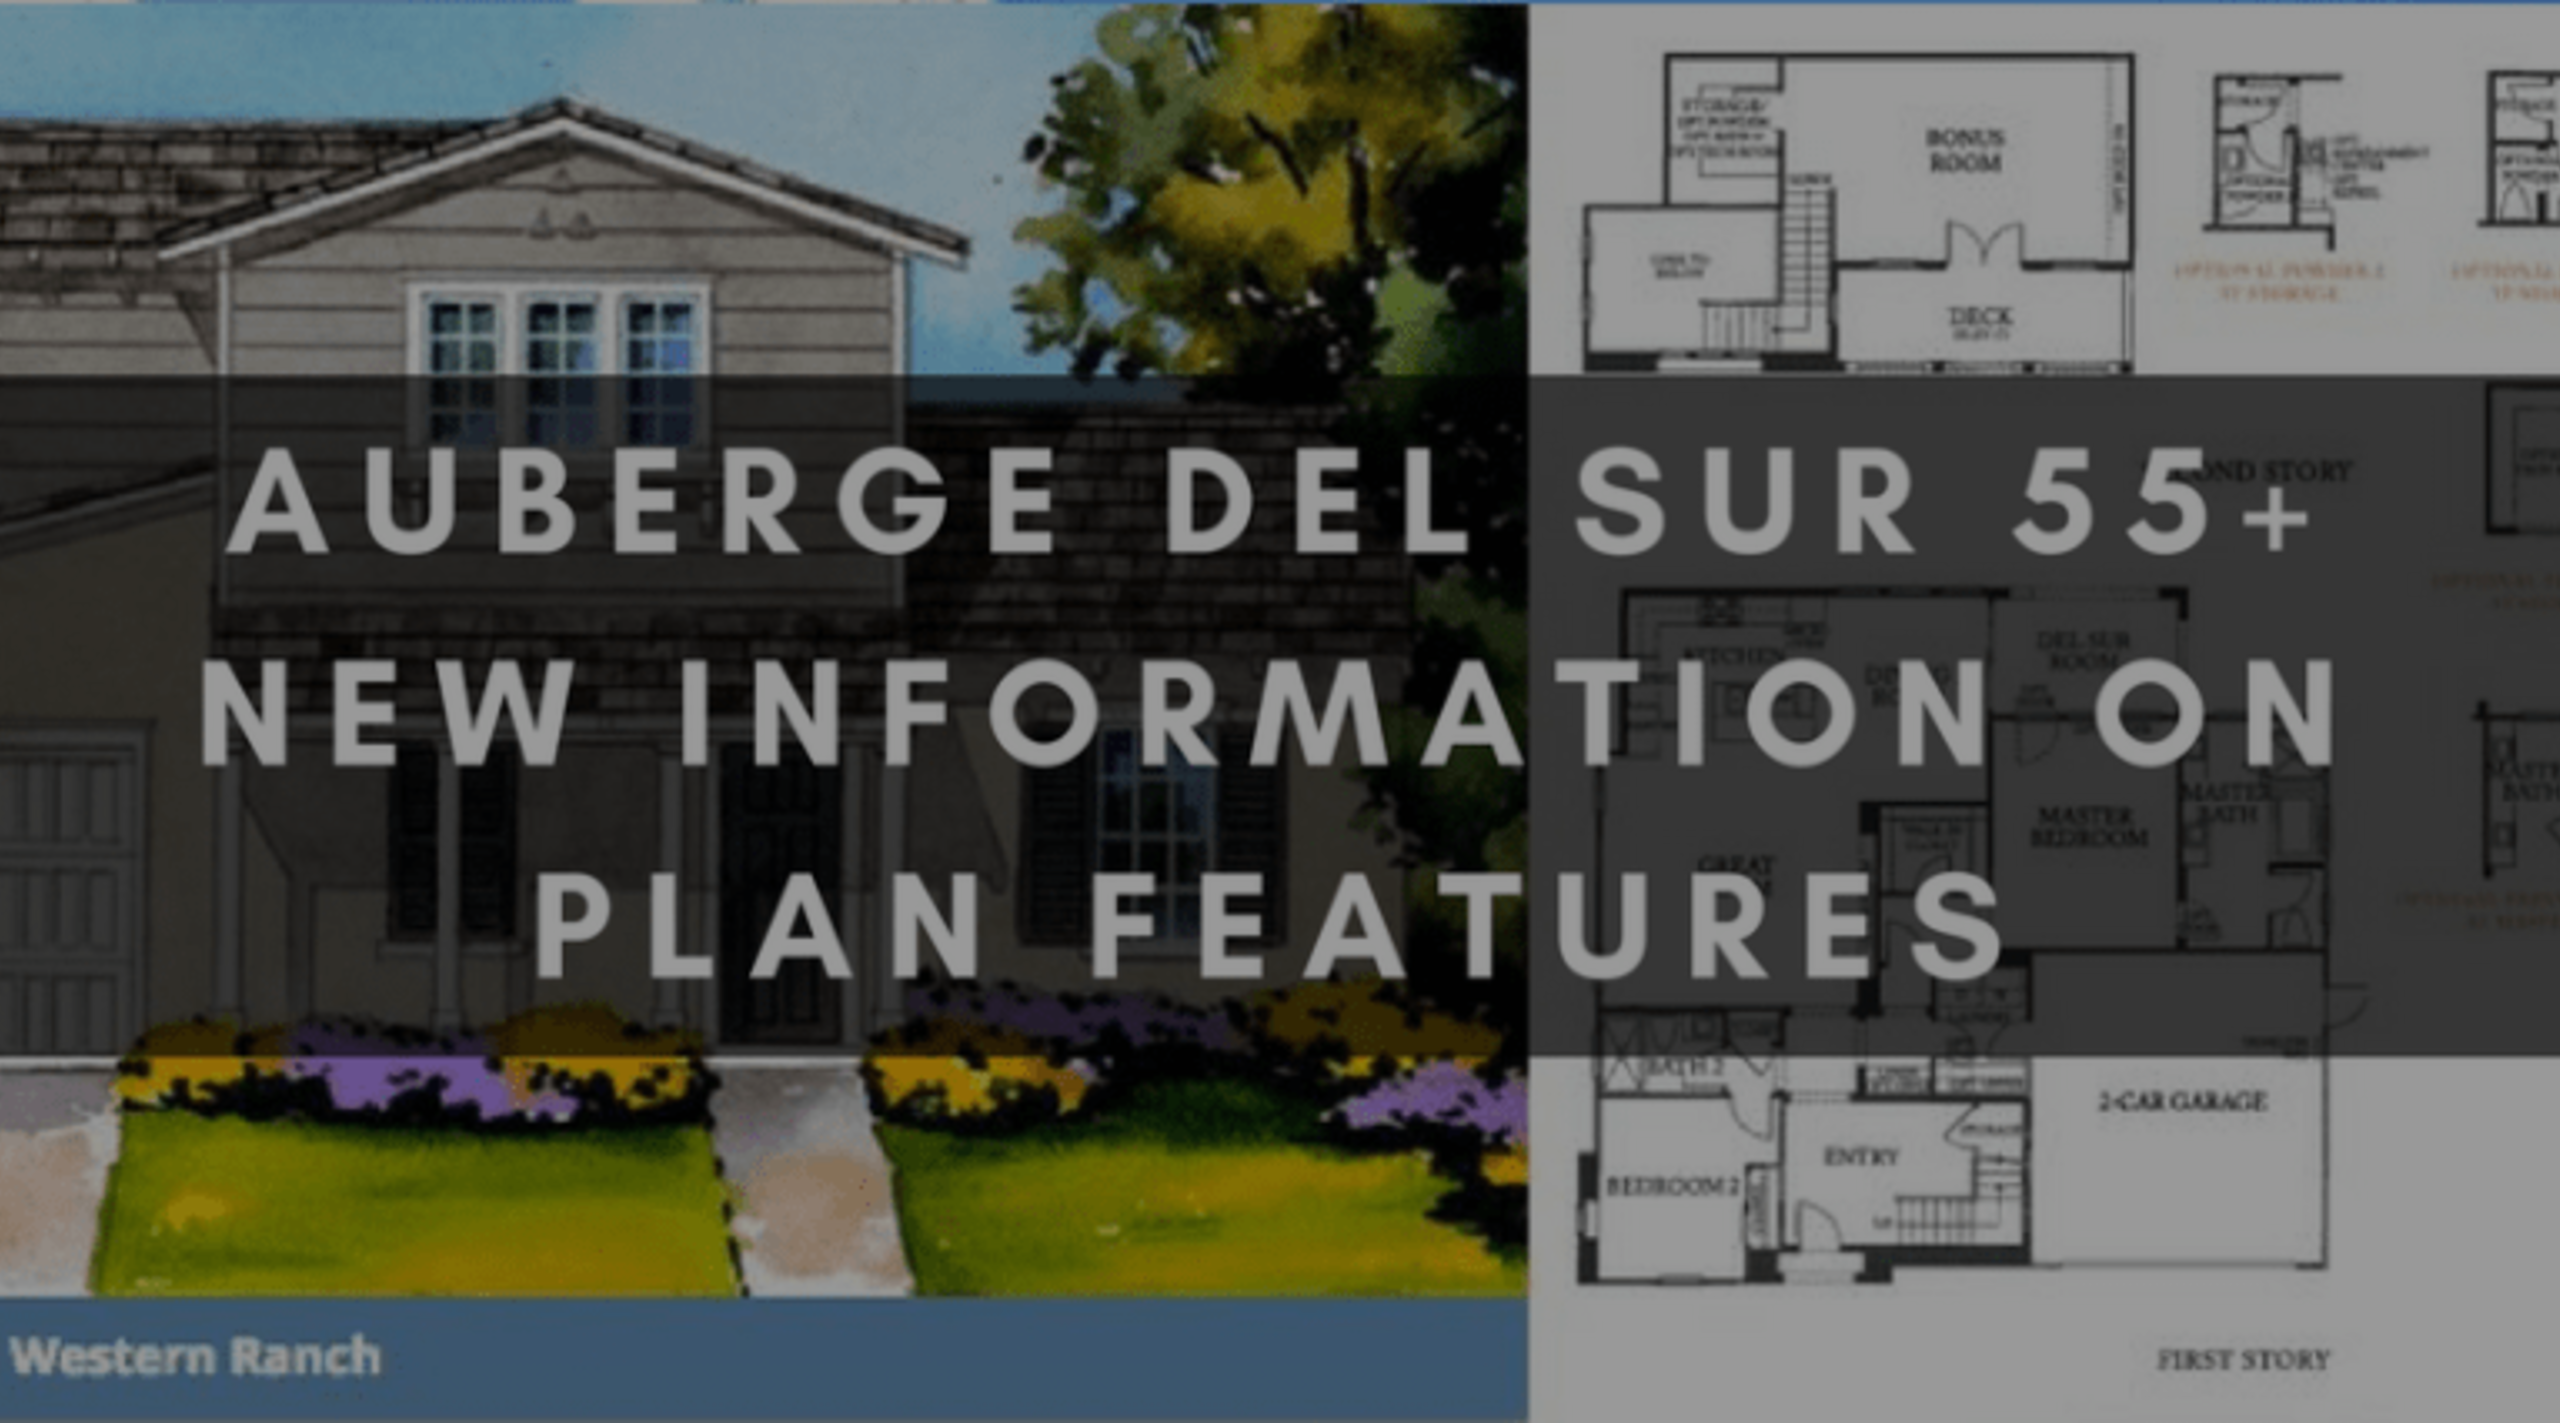 AUBERGE DEL SUR 55+ | NEW INFORMATION ON PLAN FEATURES